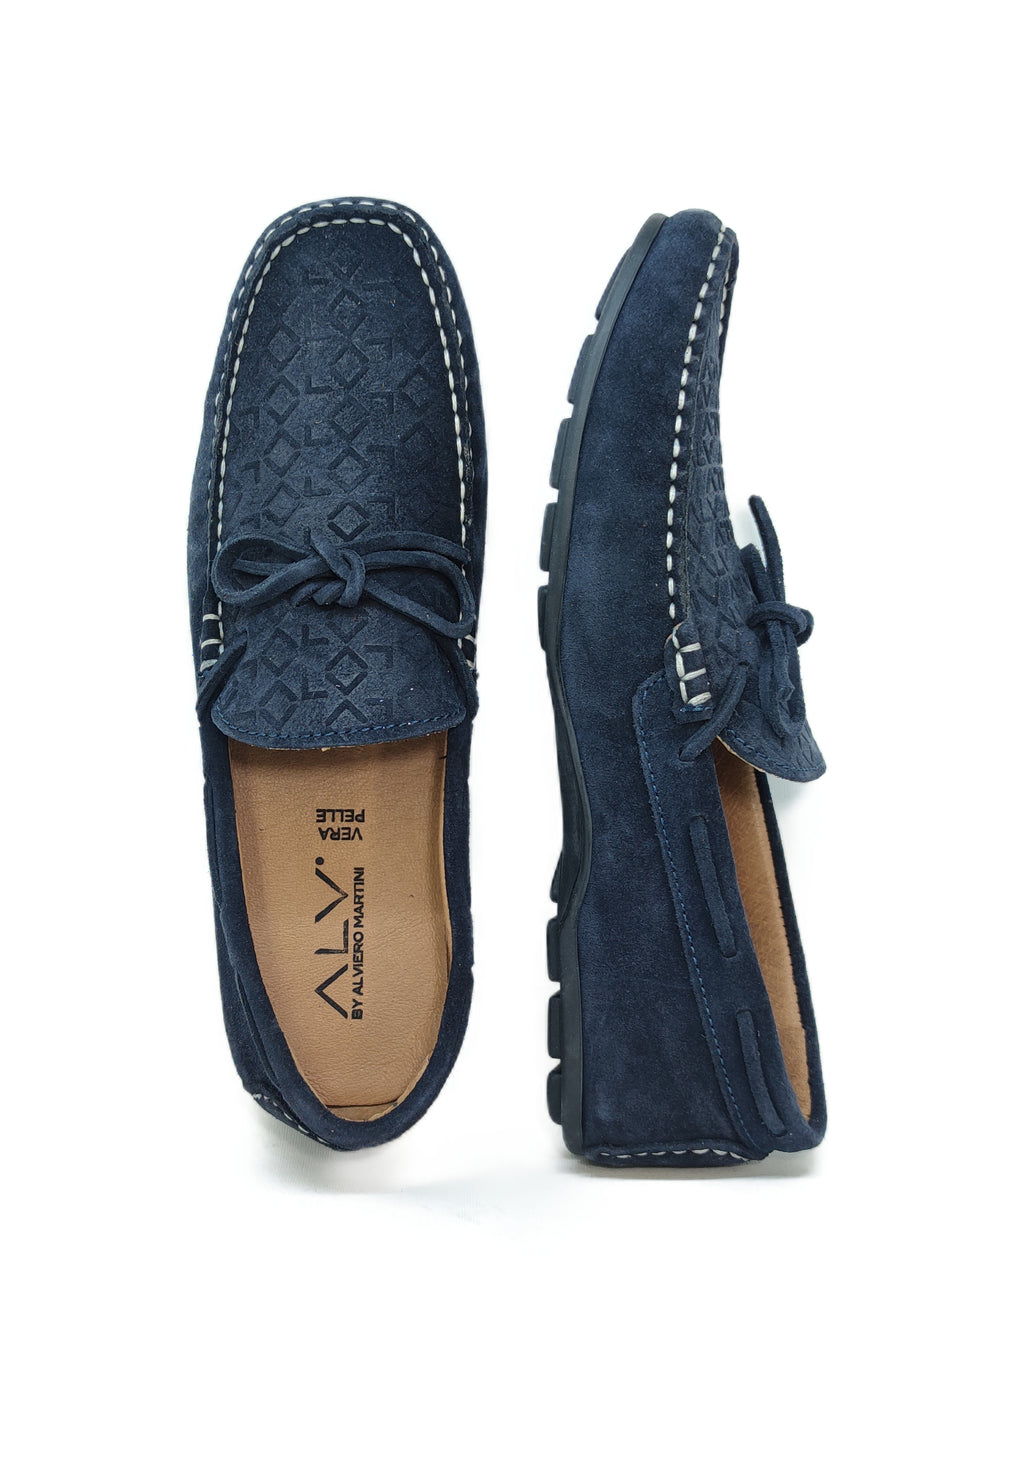 ALV205 BLUE - Mocassino uomo